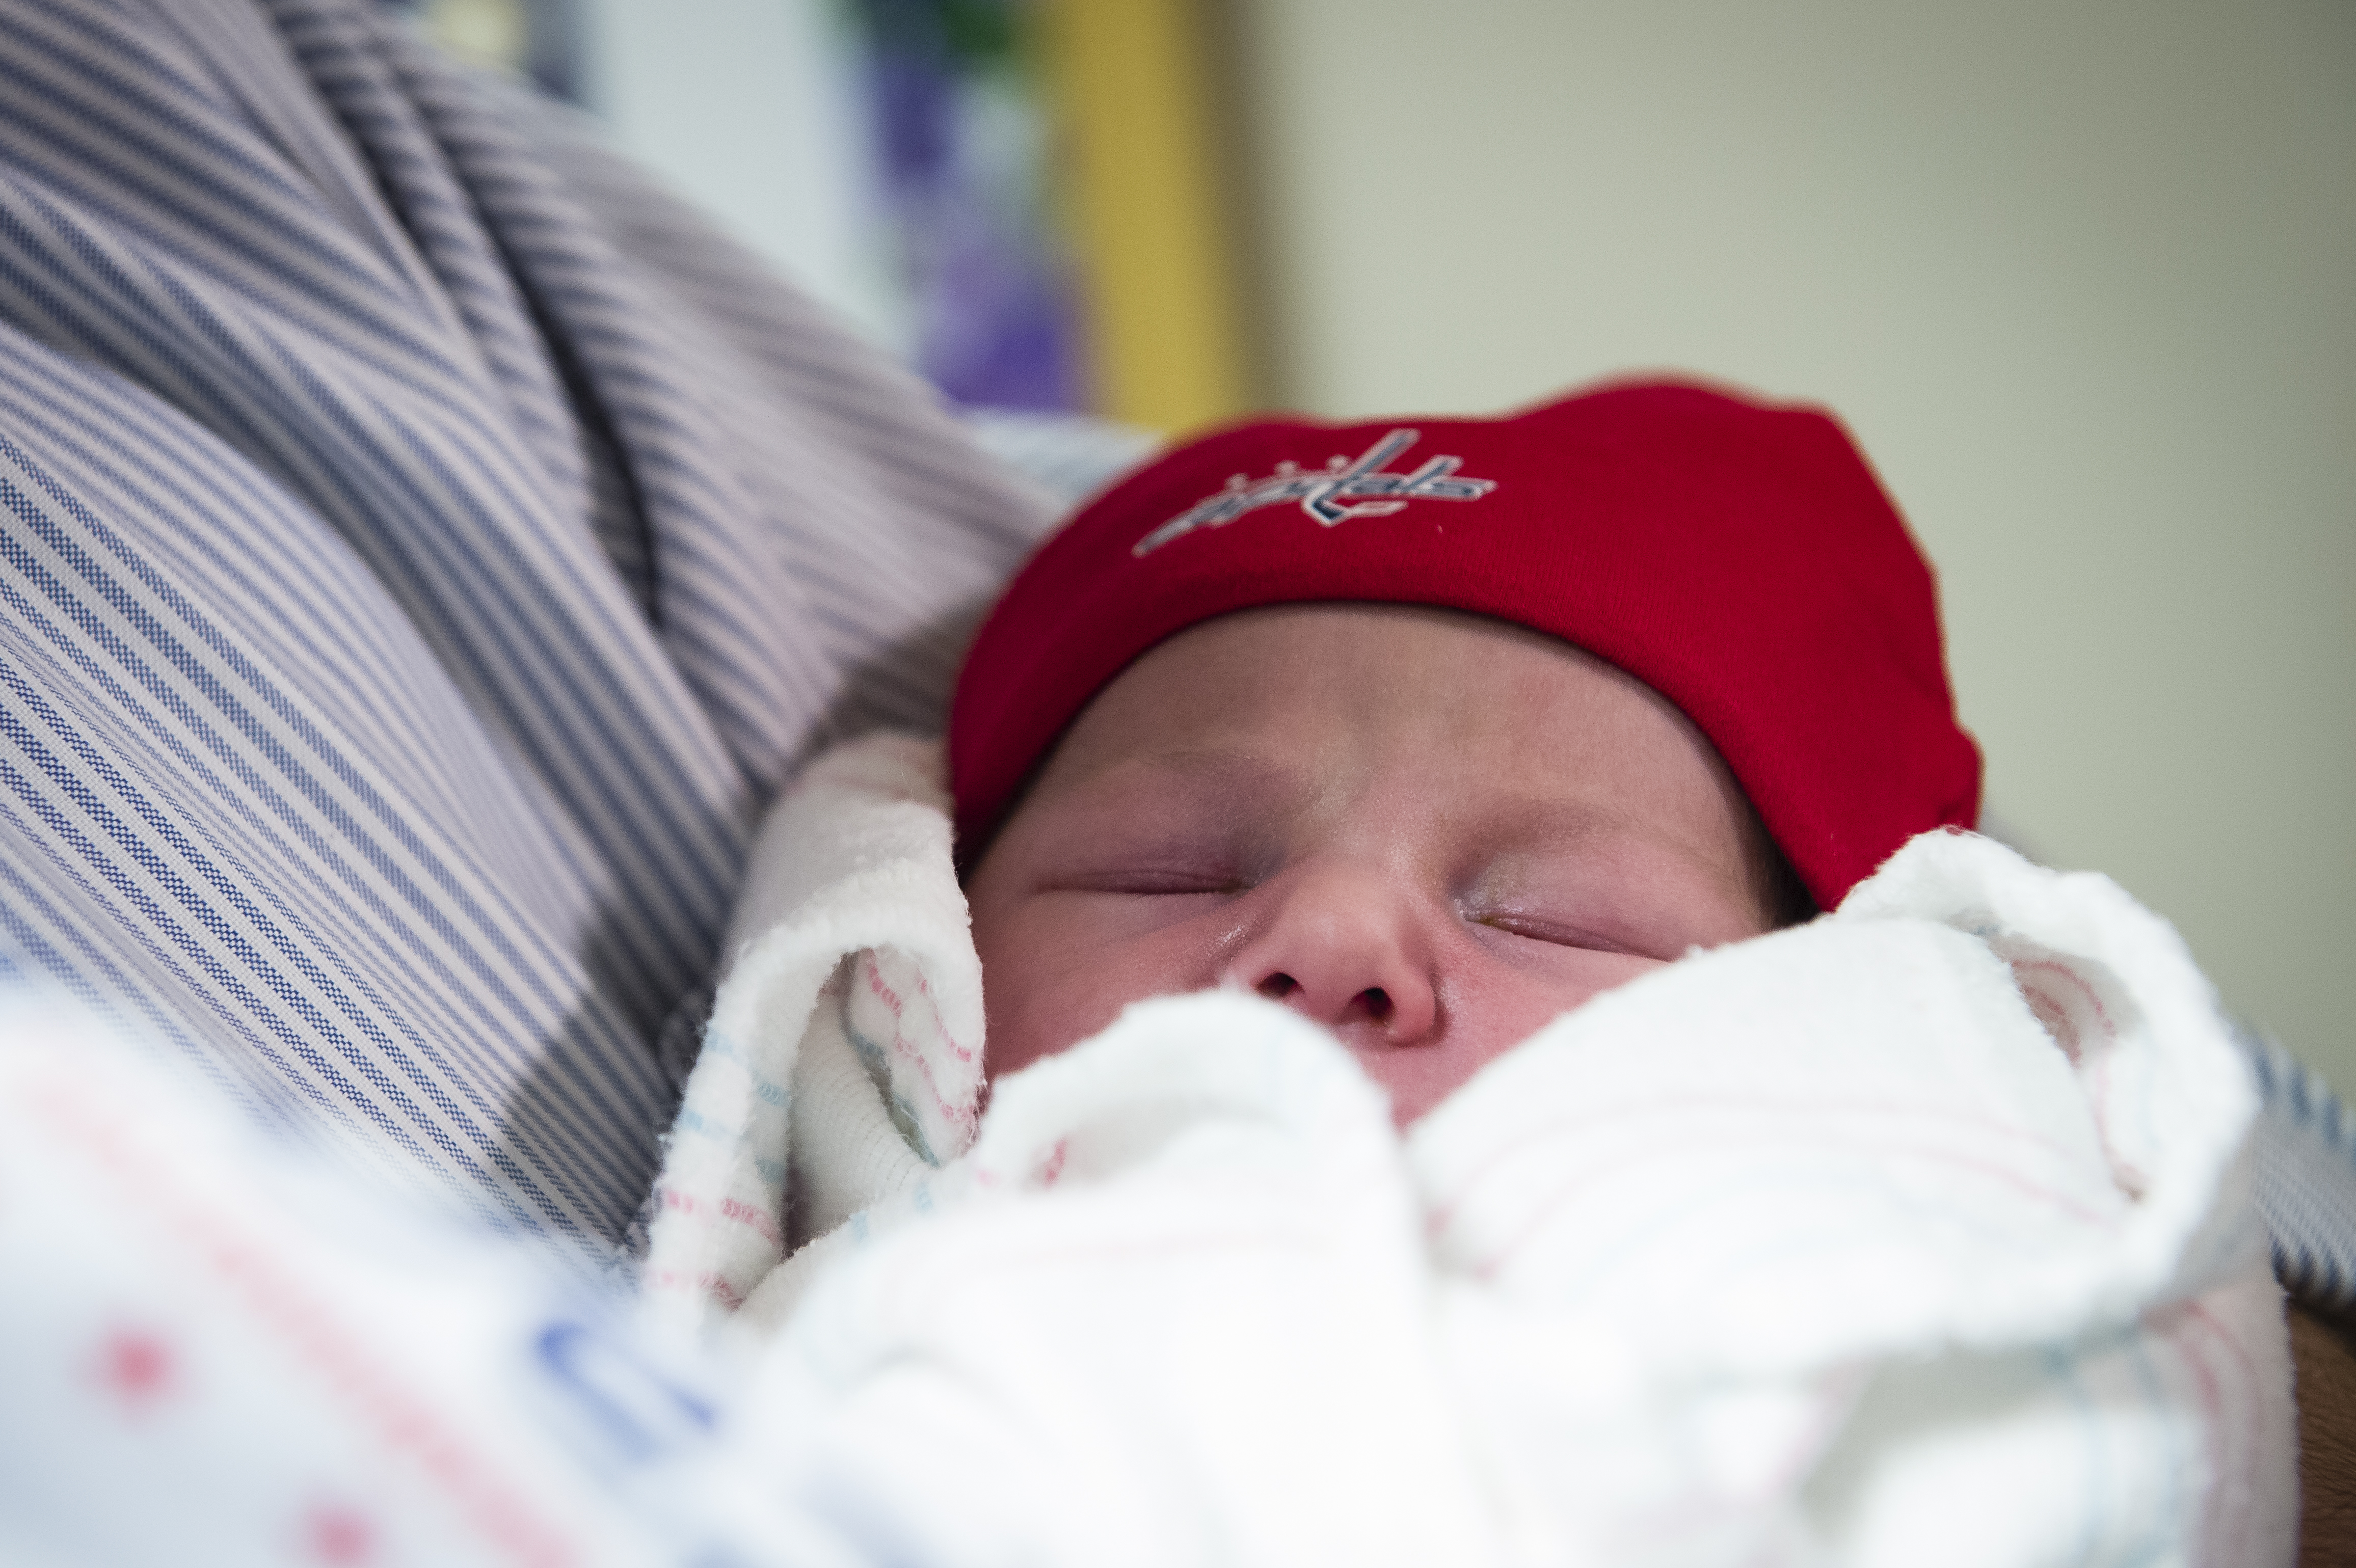 "Meet Mary Elizabeth York Allen, the Caps newest (and possibly cutest!) fan! From Wednesday, April 12 through whenever the Caps playoff run ends, all babies born at MedStar Washington Hospital Center and MedStar Georgetown University Hospital will receive a complimentary Washington Capitals package including a blanket, hat and gift for the mother. ""Milly"" was born yesterday and is the first Caps Playoff Baby. Her dad, a huge Caps fan, was pretty syked about the free playoff tickets his newborn bundle of joy garnered him, and even said he would have considered naming her after a Caps player had she been a boy. Fans are sharing photos of their newborns by using the #CapsPlayoffBaby hashtag on social media platforms, so check that out if you need a smile today! Congrats to all the new mamas and papas out there and we hope you keep posting pics of your cuties in their Caps gear! (Photo by Patrick McDermott for the Washington Capitals)"